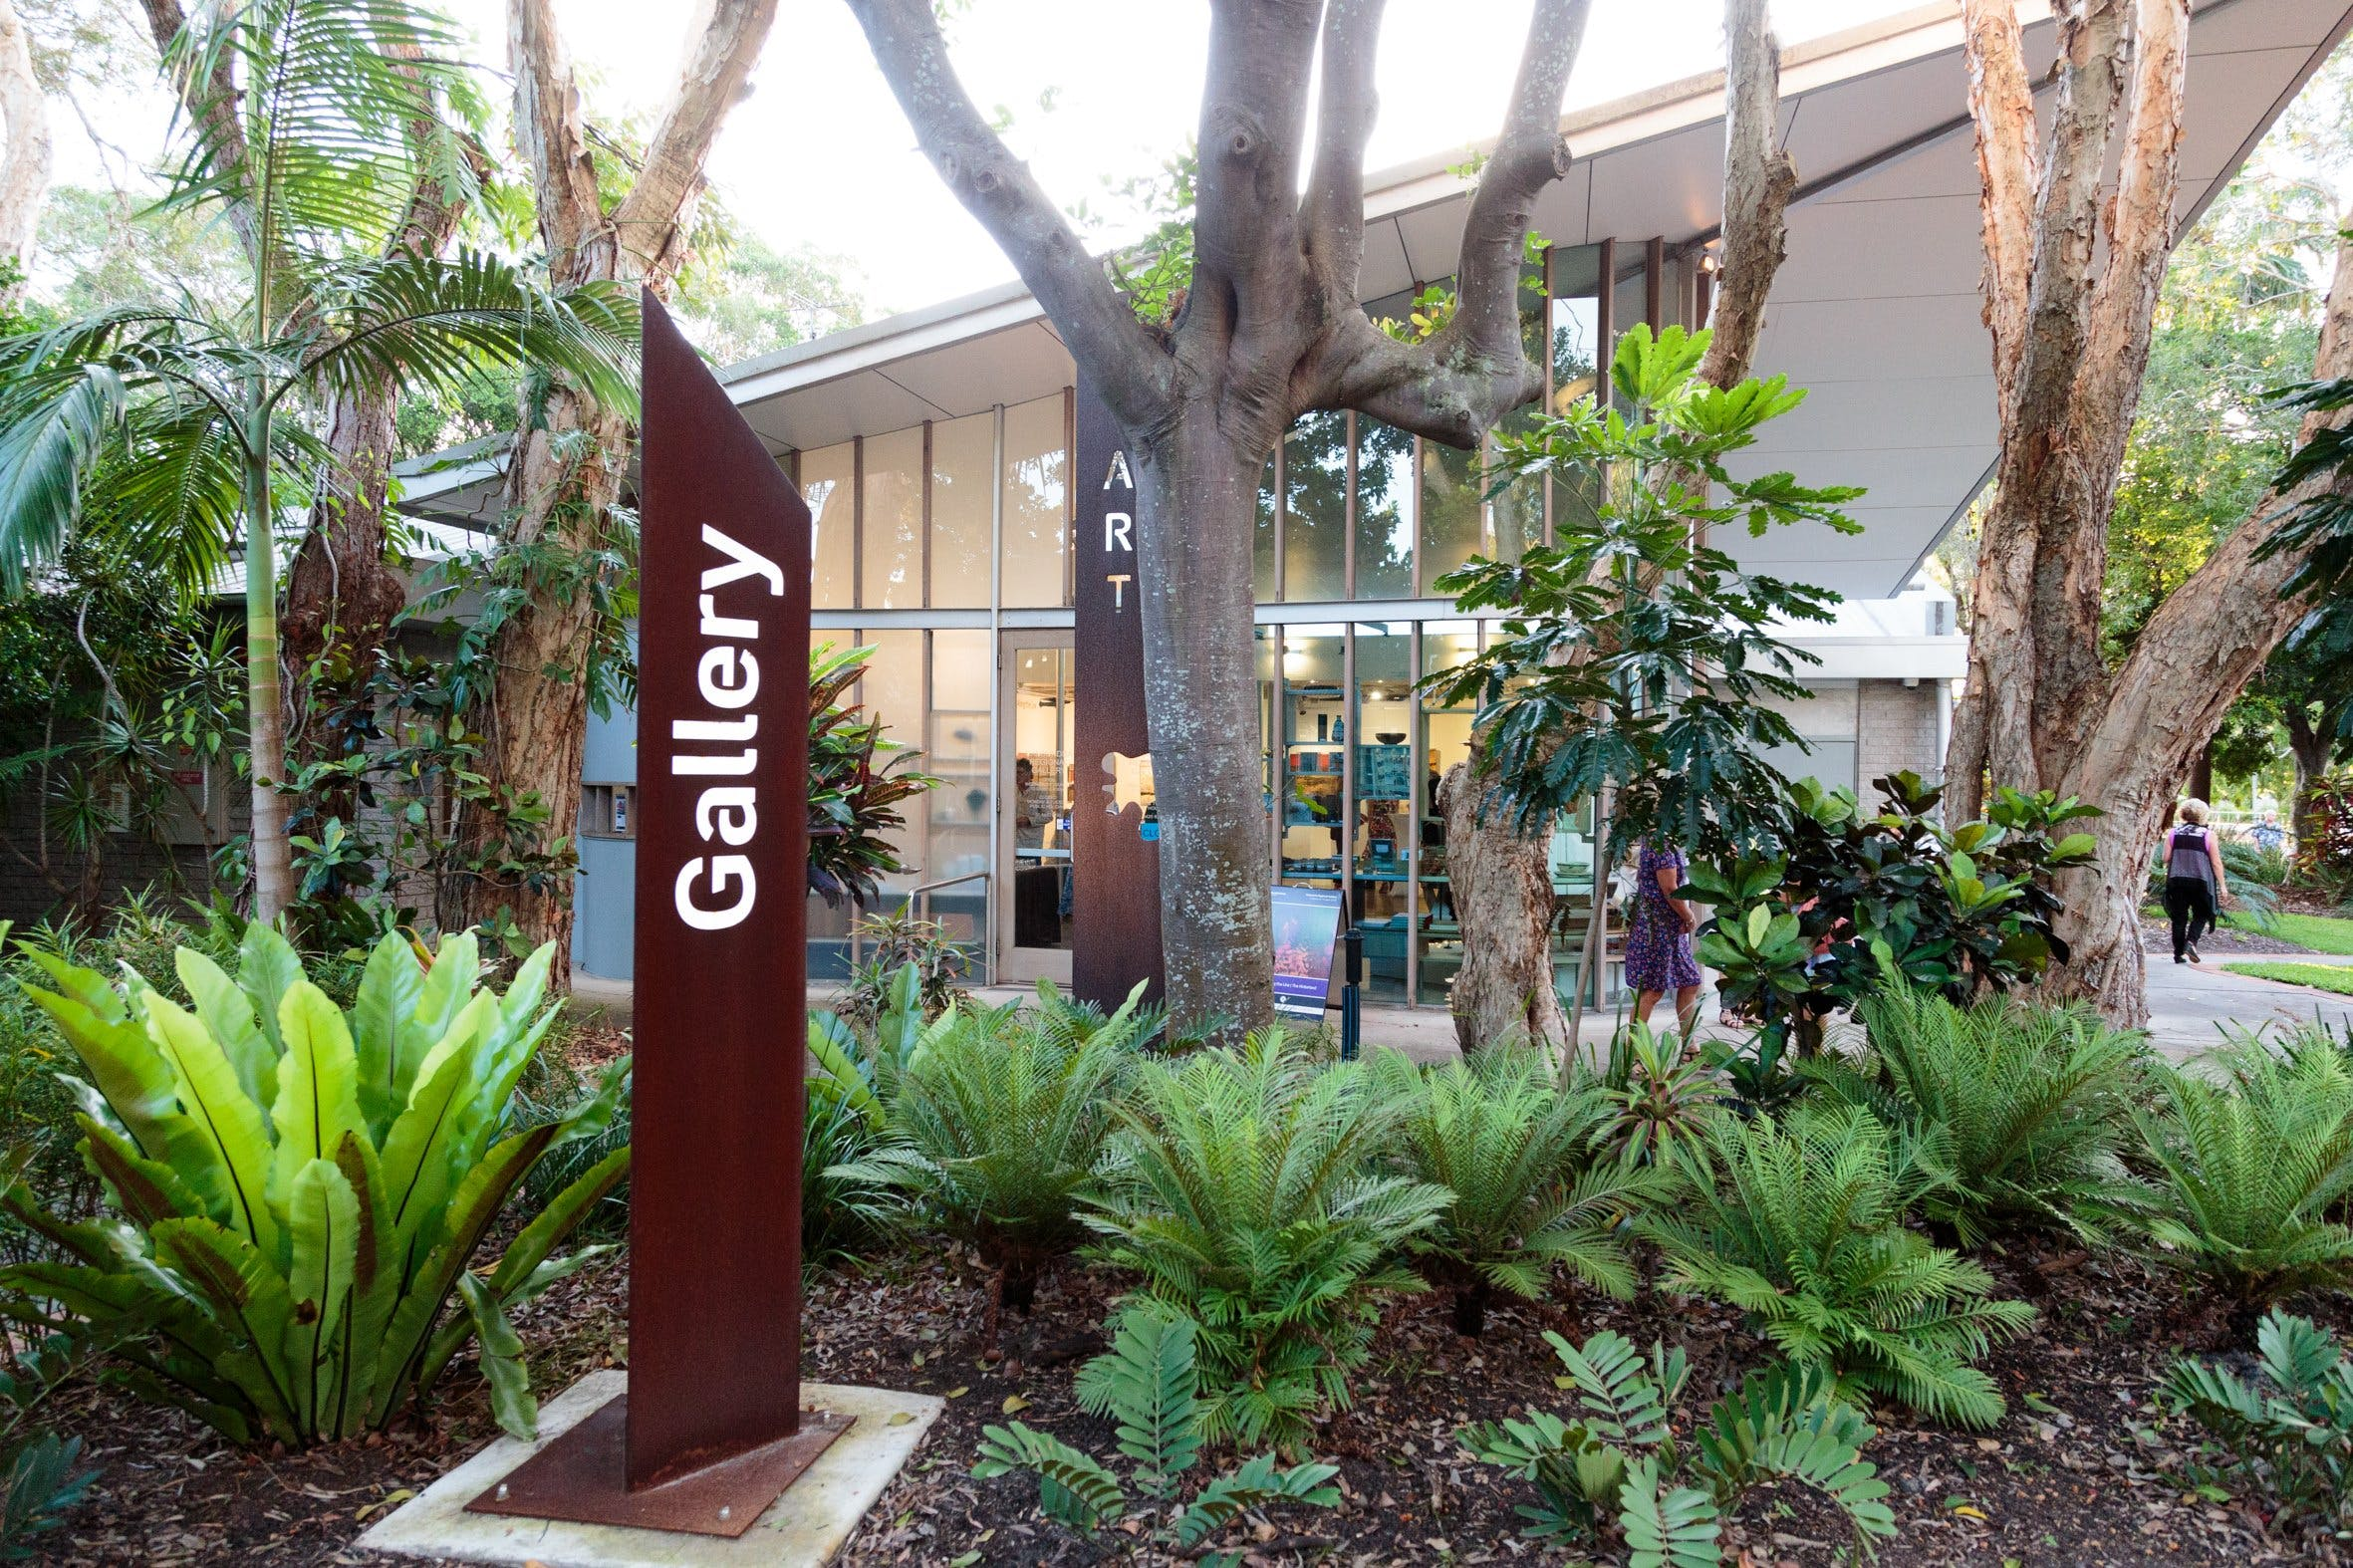 Caloundra Regional Art Gallery - Accommodation Gold Coast